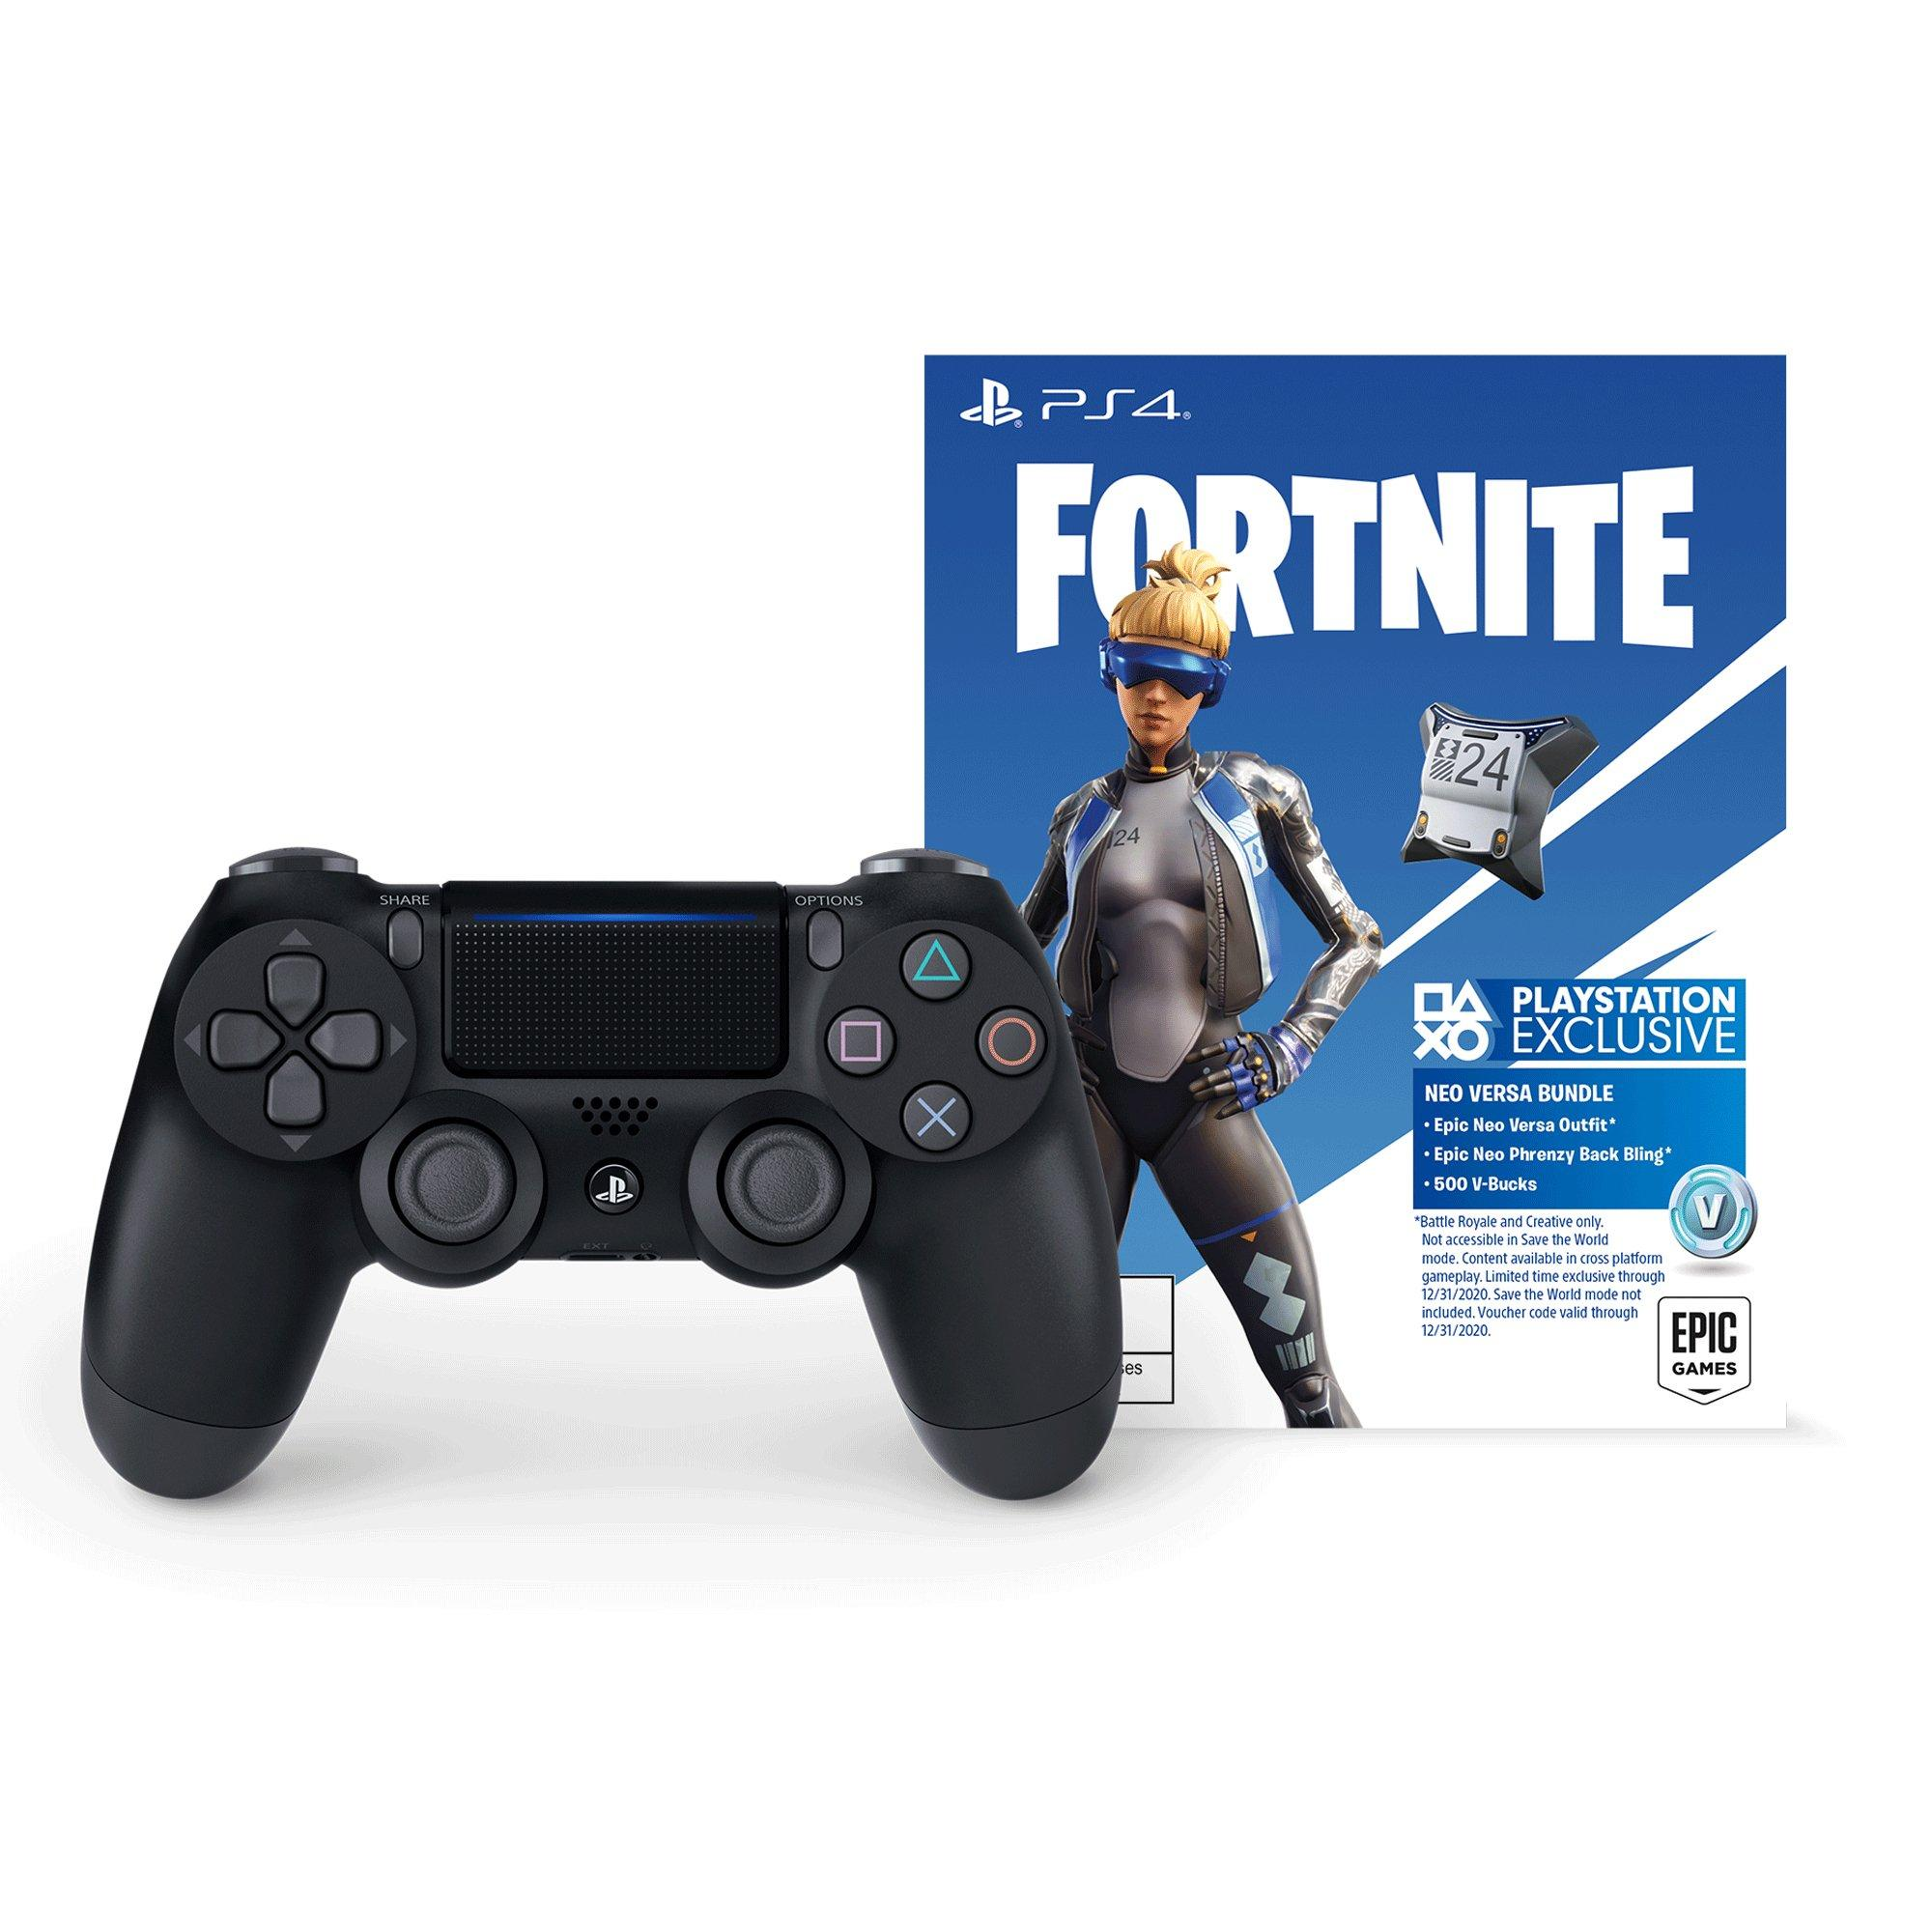 Sony DUALSHOCK 4 Fortnite Neo Versa Wireless Controller Bundle |  PlayStation 4 | GameStop